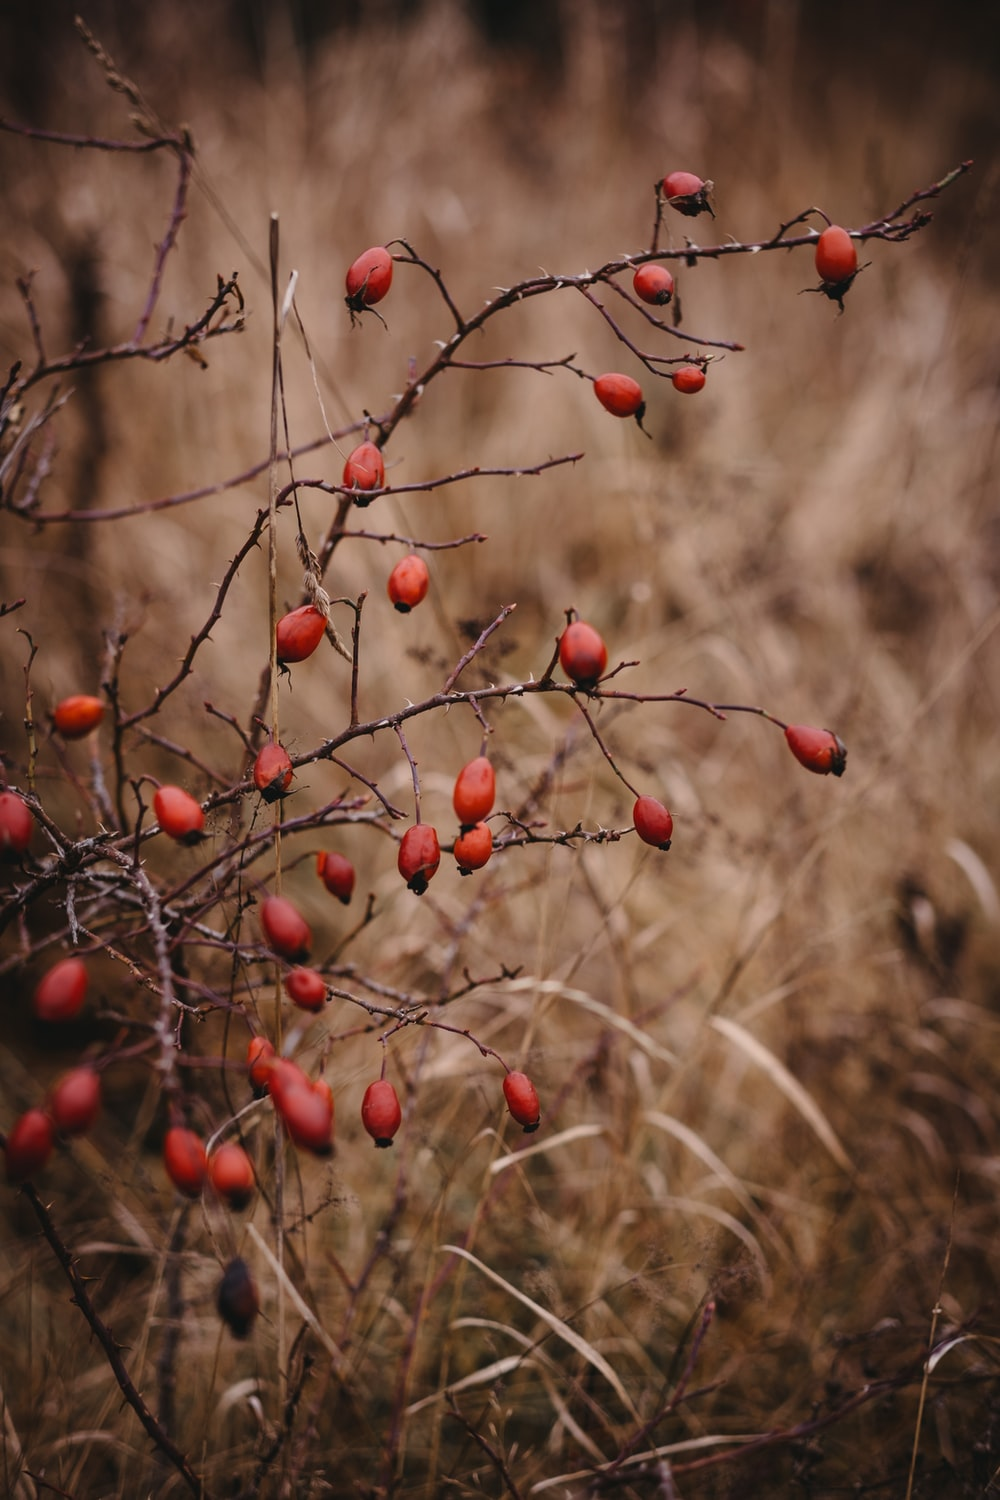 red round fruits on brown grass during daytime